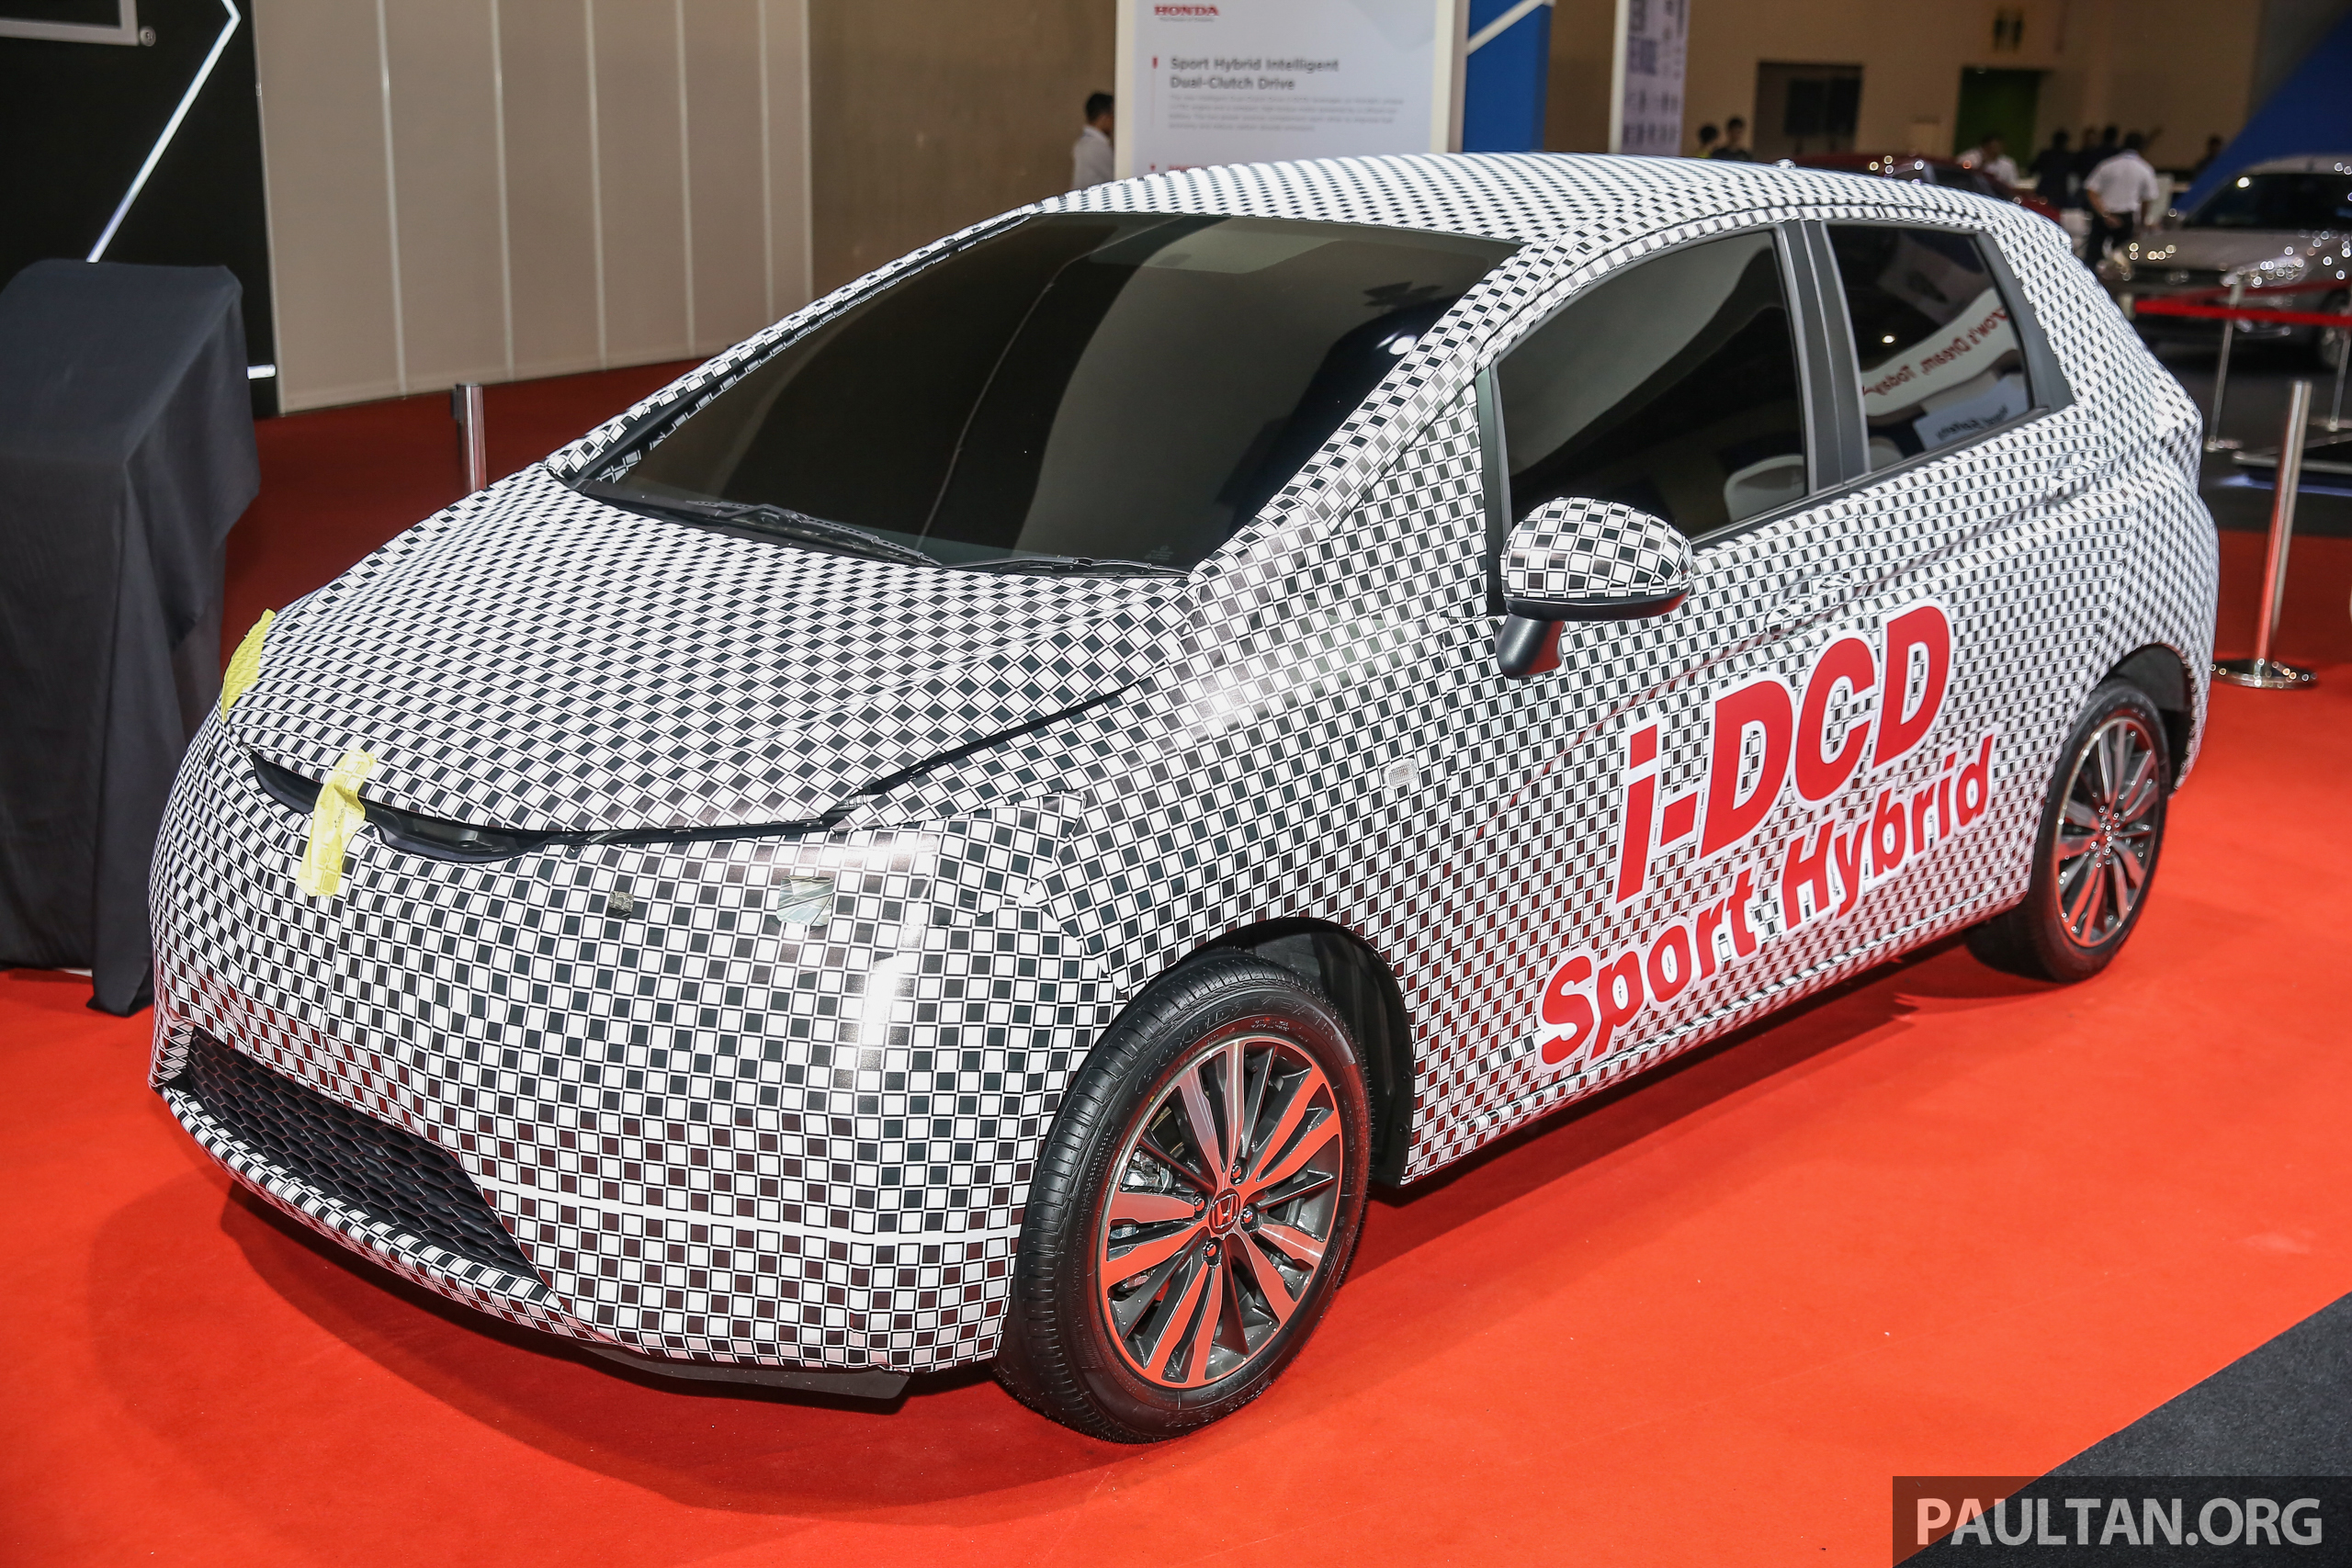 honda jazz hybrid i dcd teased in malaysia full hybrid with dct ckd exports to asean possible. Black Bedroom Furniture Sets. Home Design Ideas